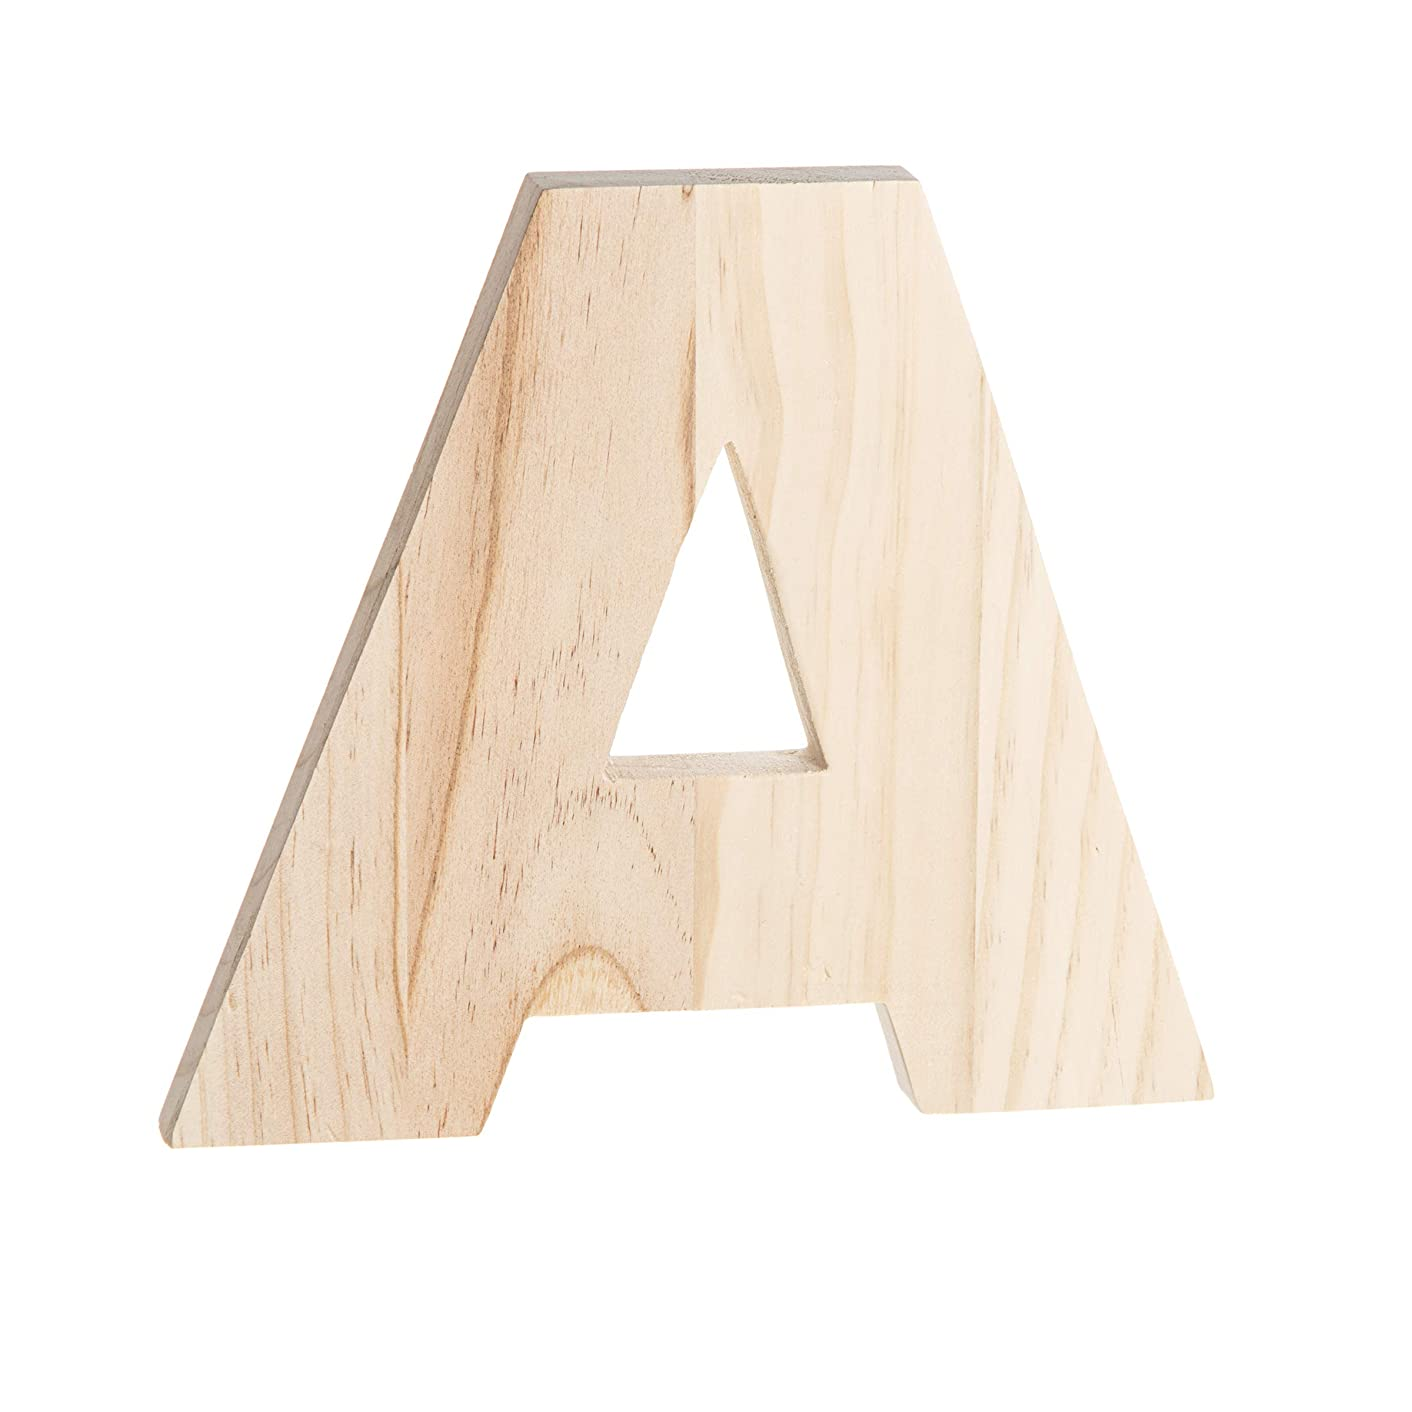 Darice 30048996 Unfinished Wood Letter A: 8 x 8 inches